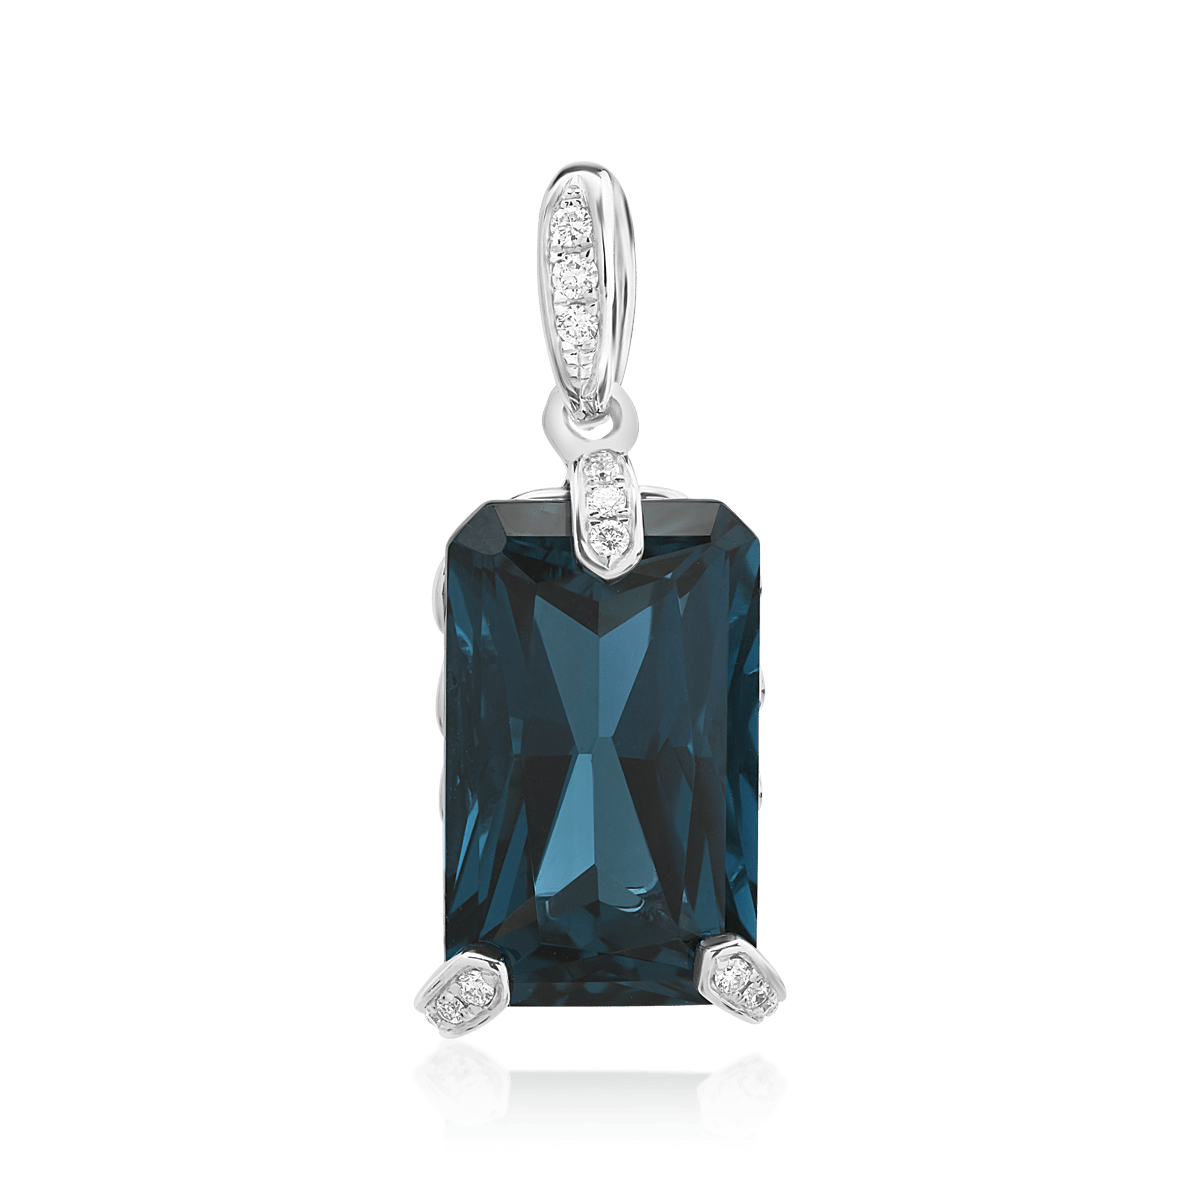 Pandant din aur alb de 14K cu topaz london blue de 11.33ct